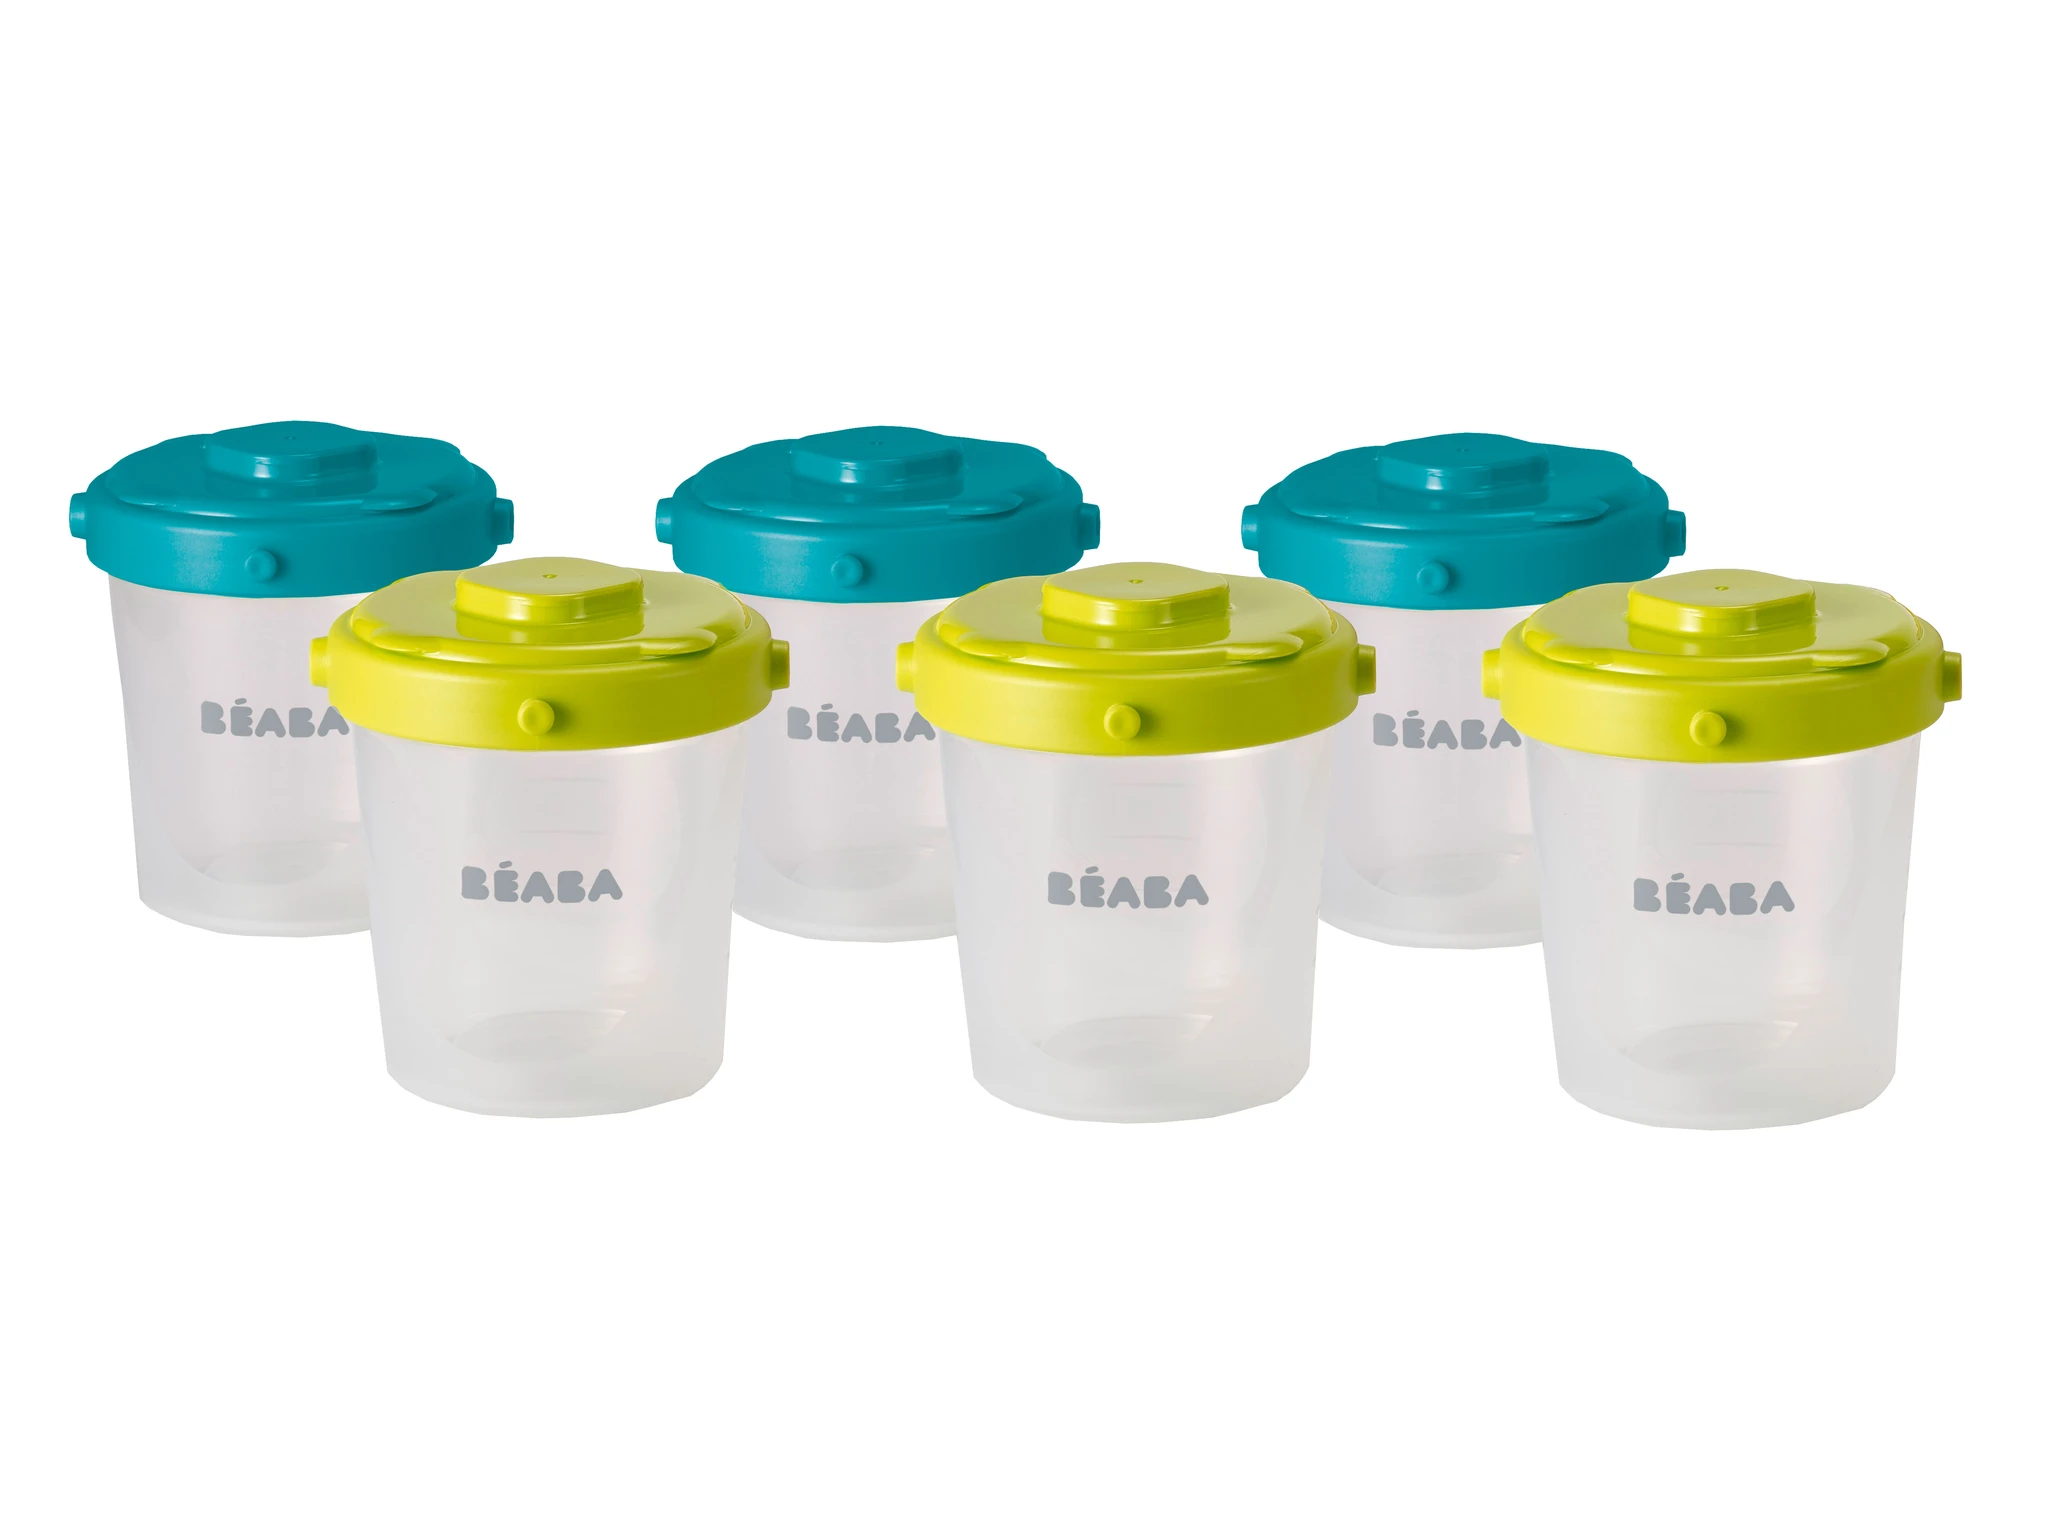 Beaba 2nd Age Set of 6 Clip Portions - 200ml